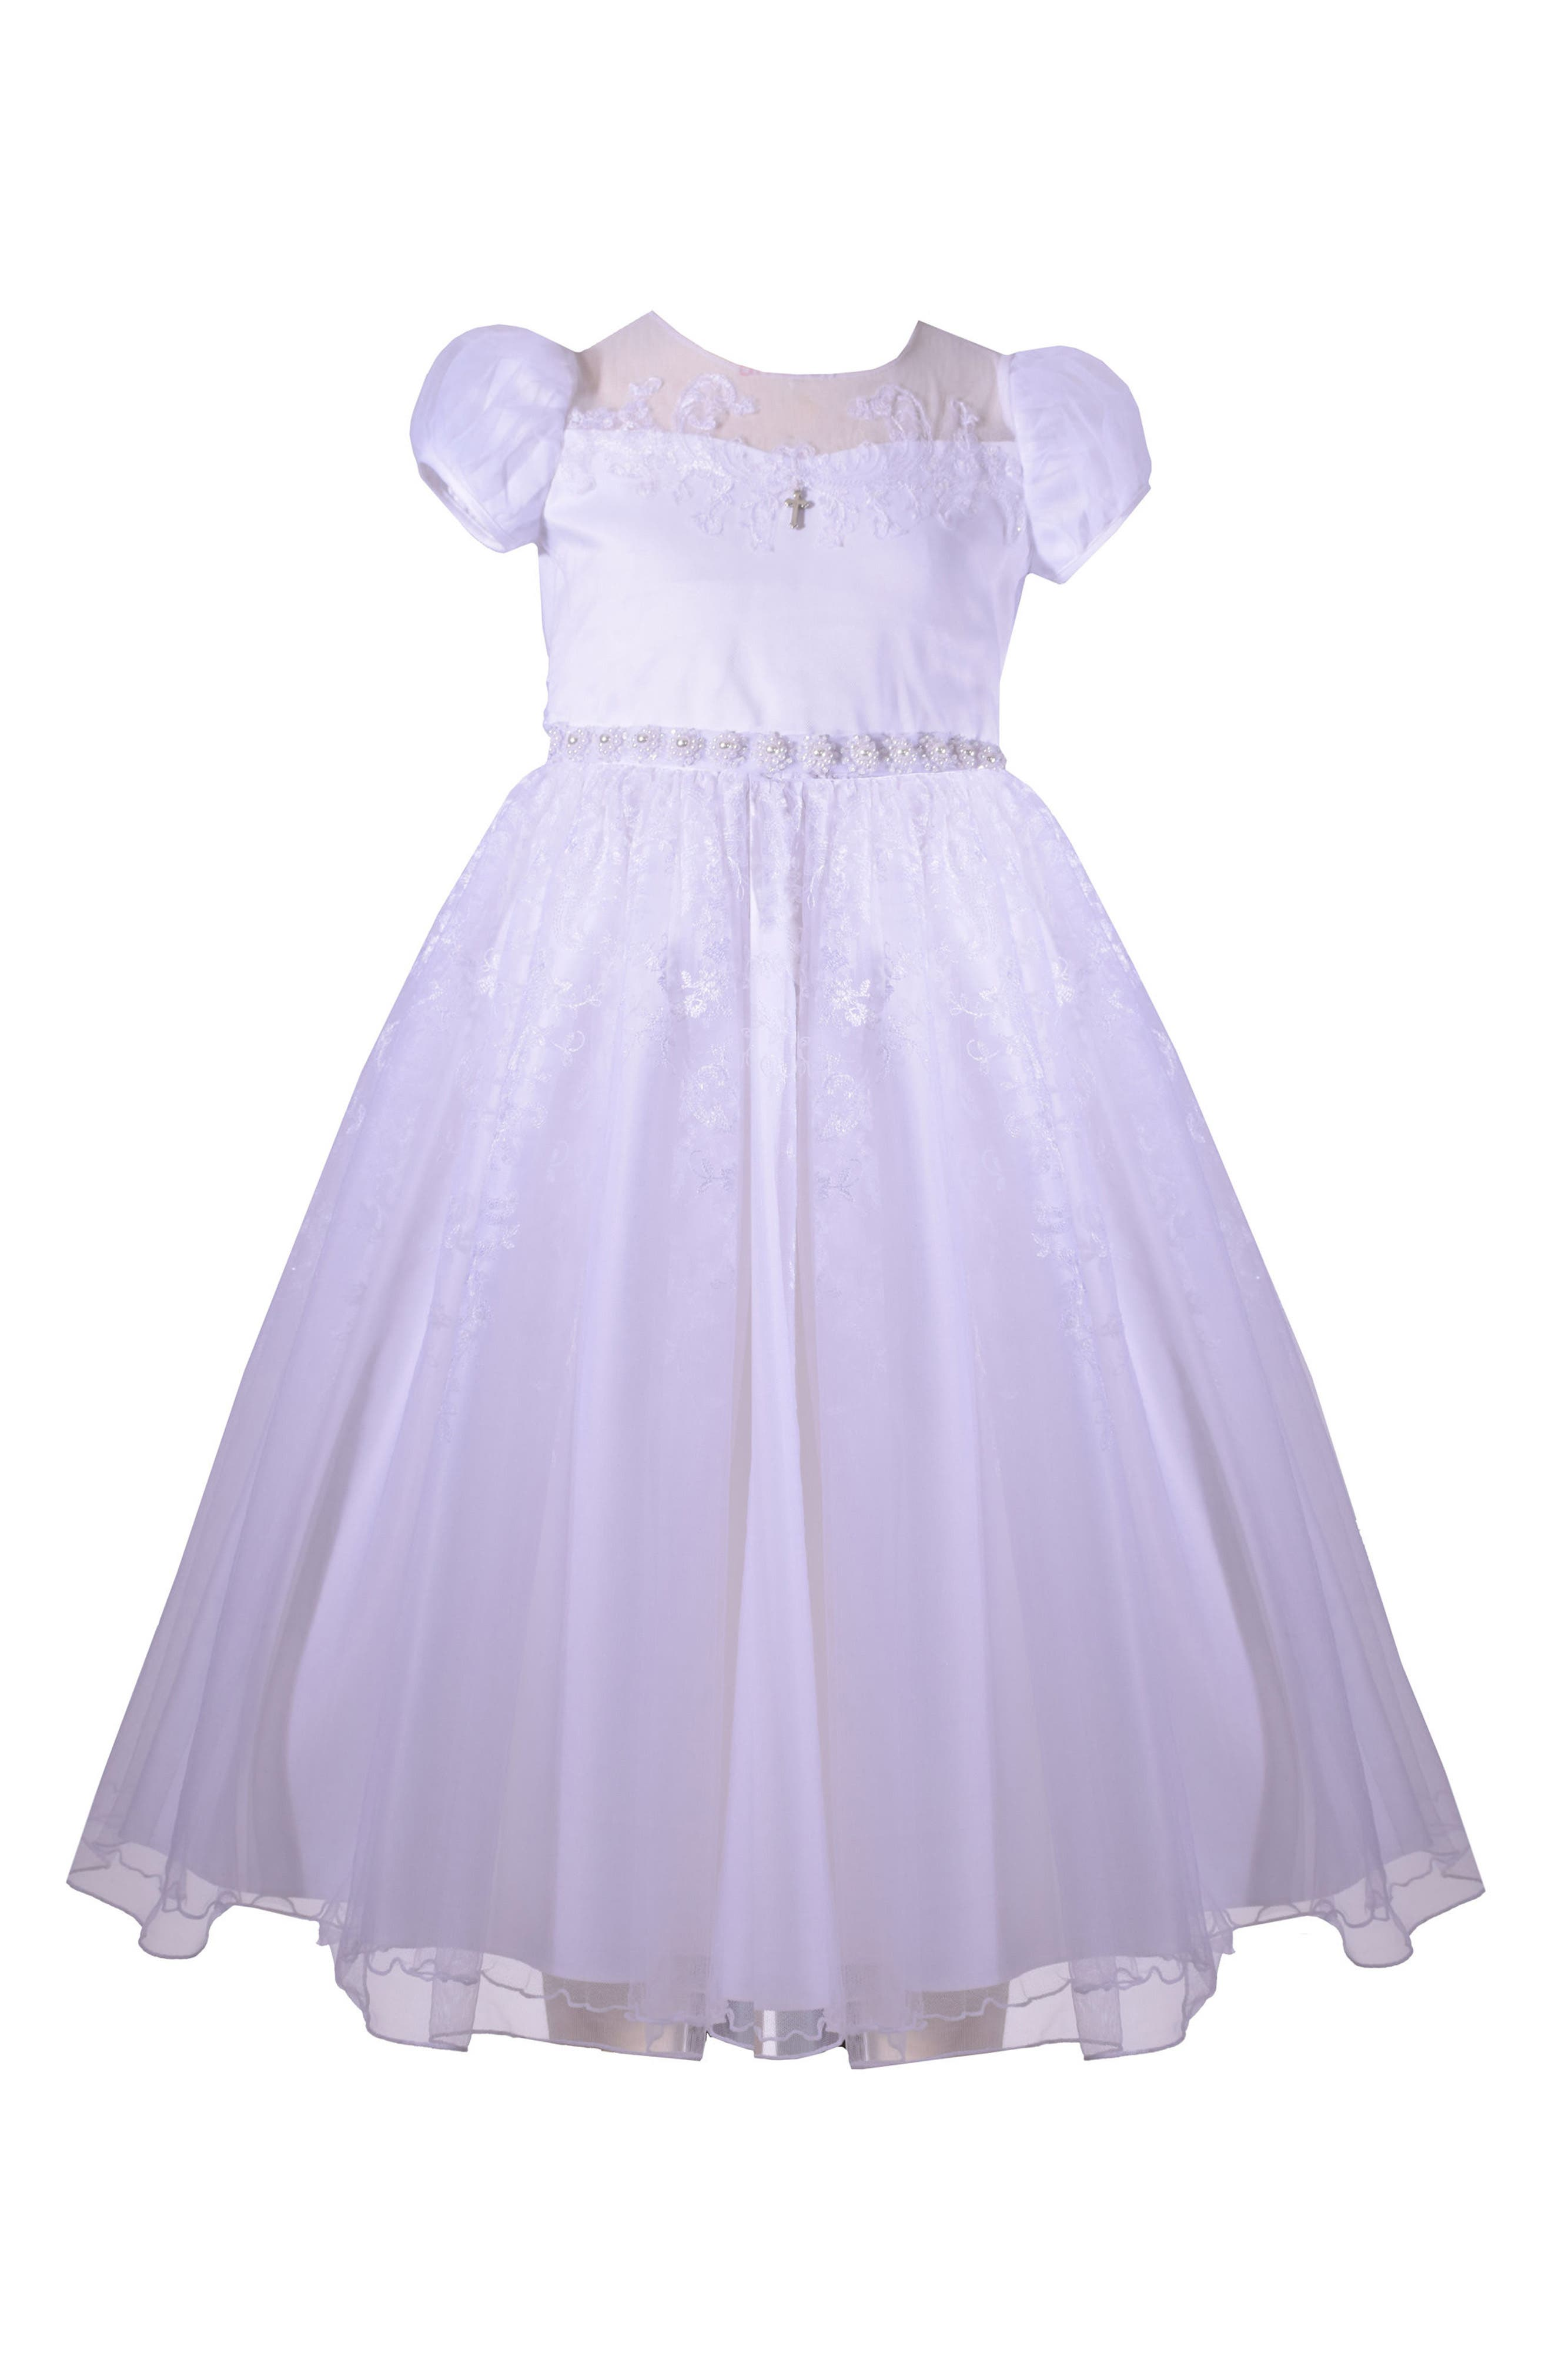 Iris & Ivy Puff Sleeve First Communion Dress (Little Girls & Big Girls)